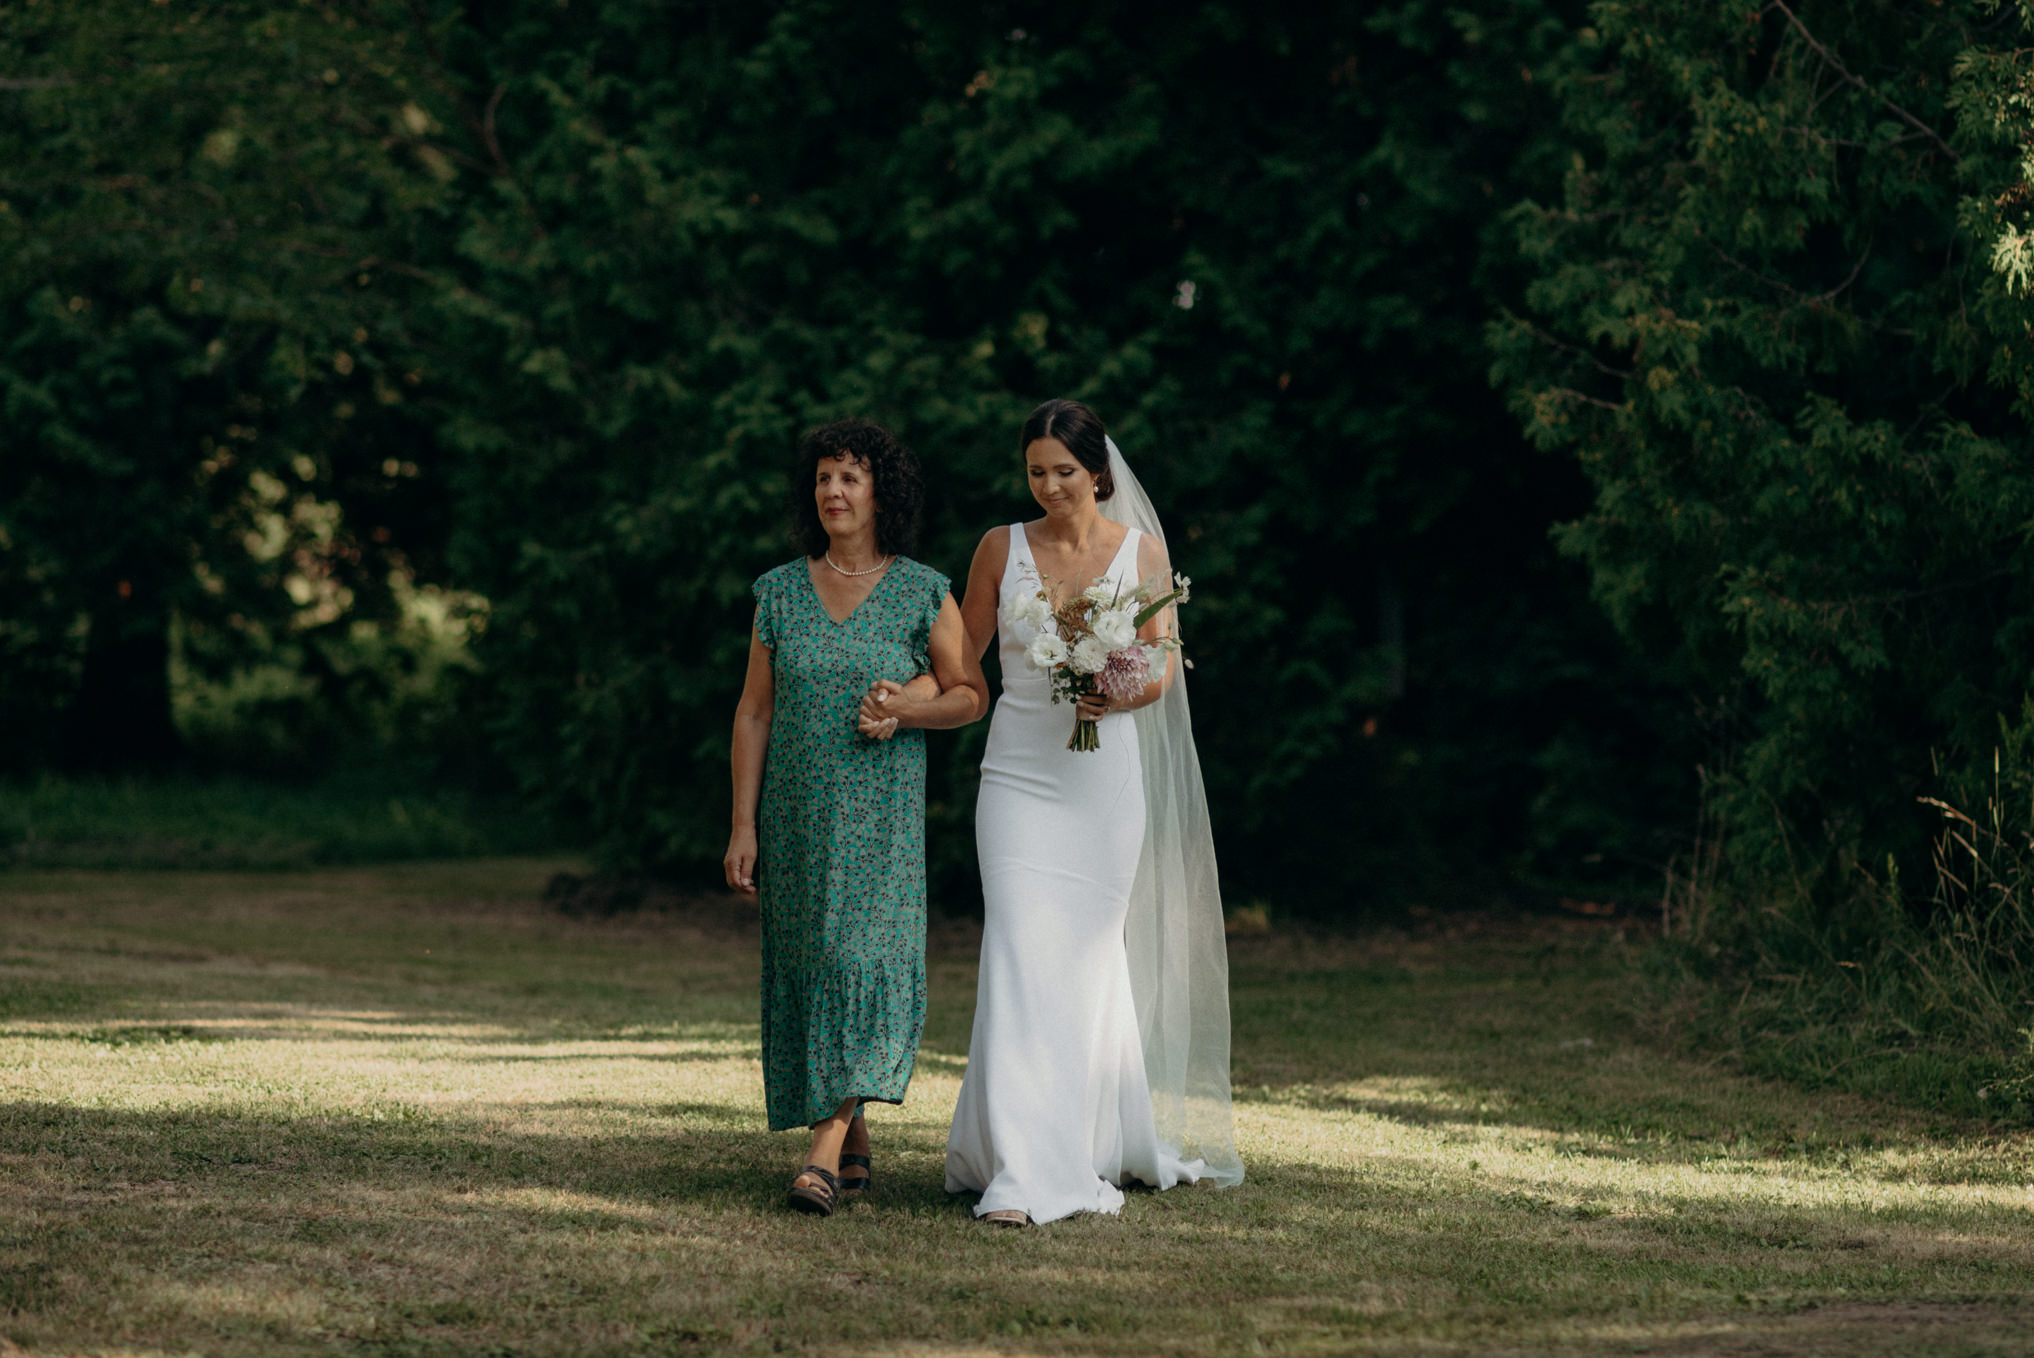 bride's mother walking her on lawn to ceremony